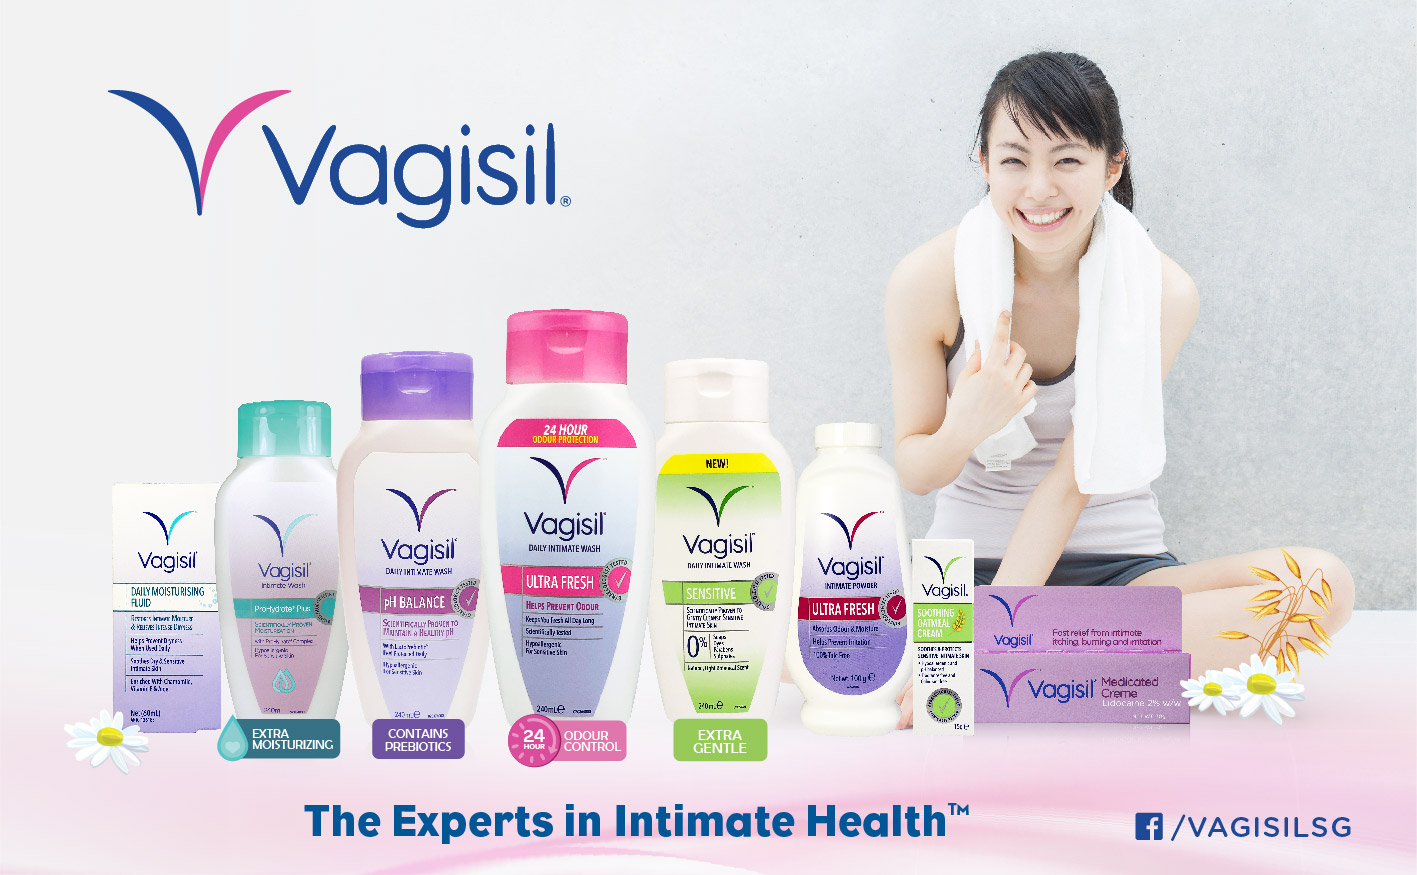 Enjoy one-time 20% off Vagisil products